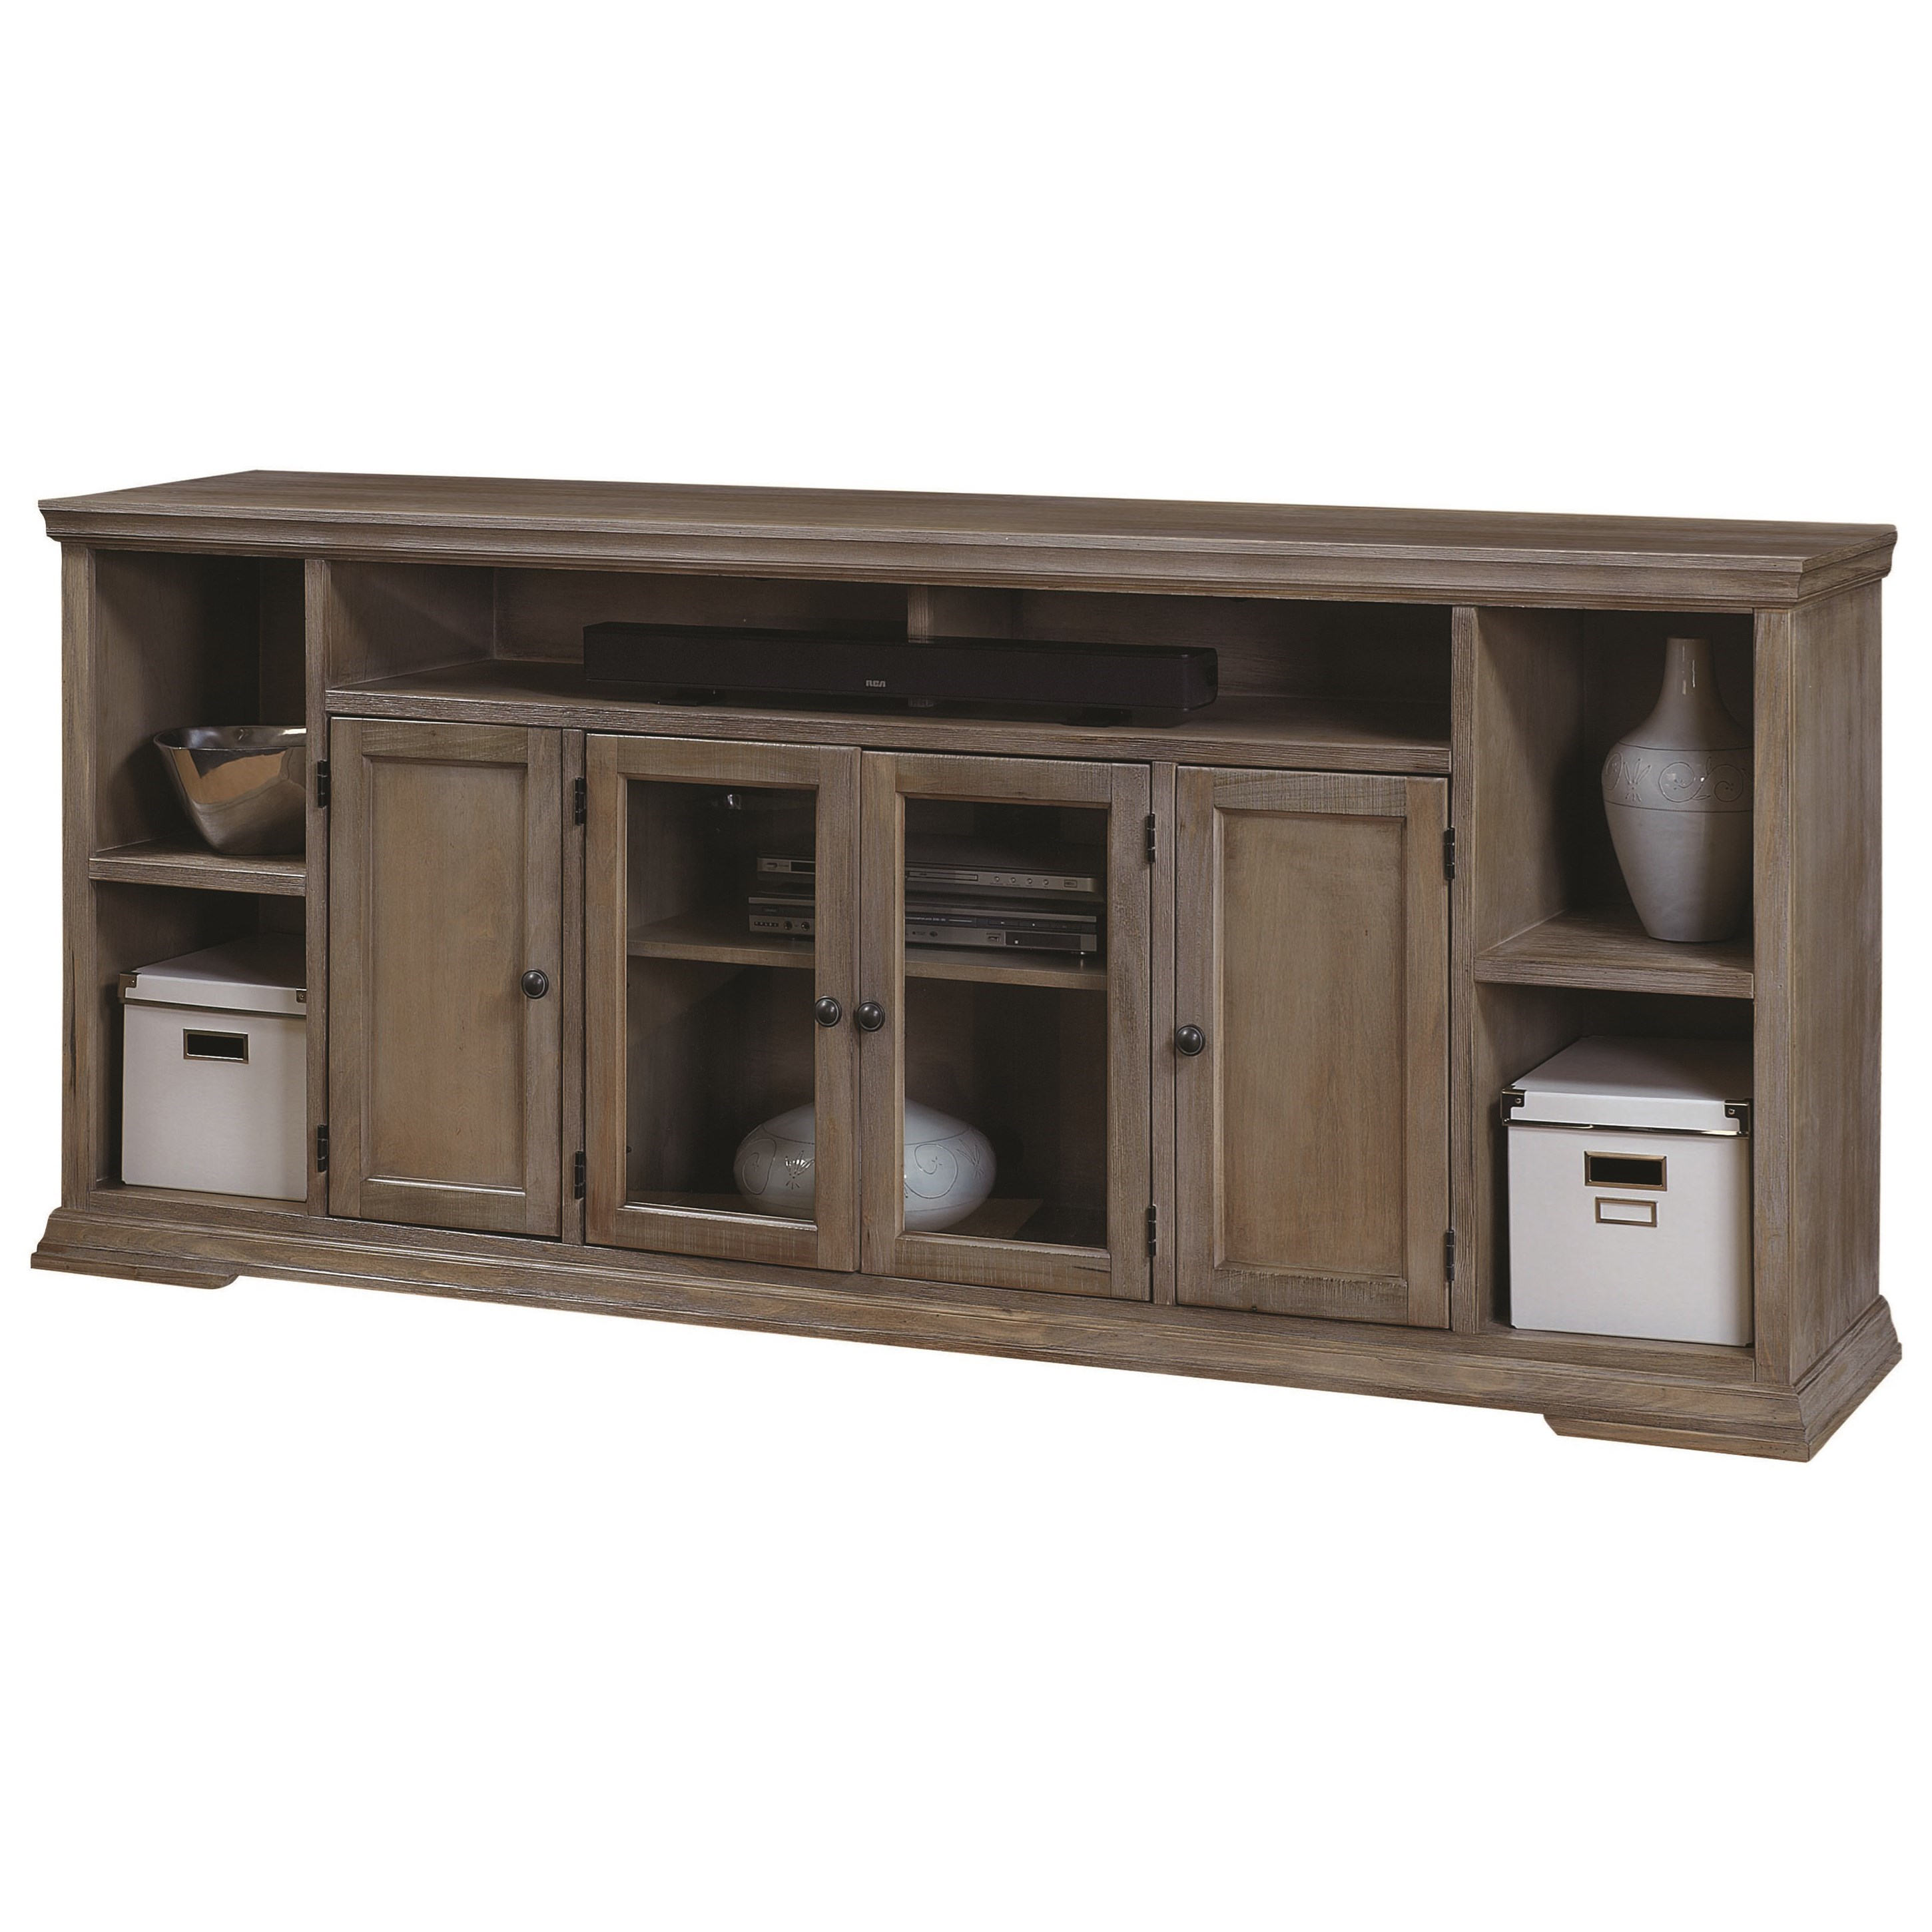 sofa table 84 inches alternative to covers aspenhome canyon creek inch tv console with 4 doors and